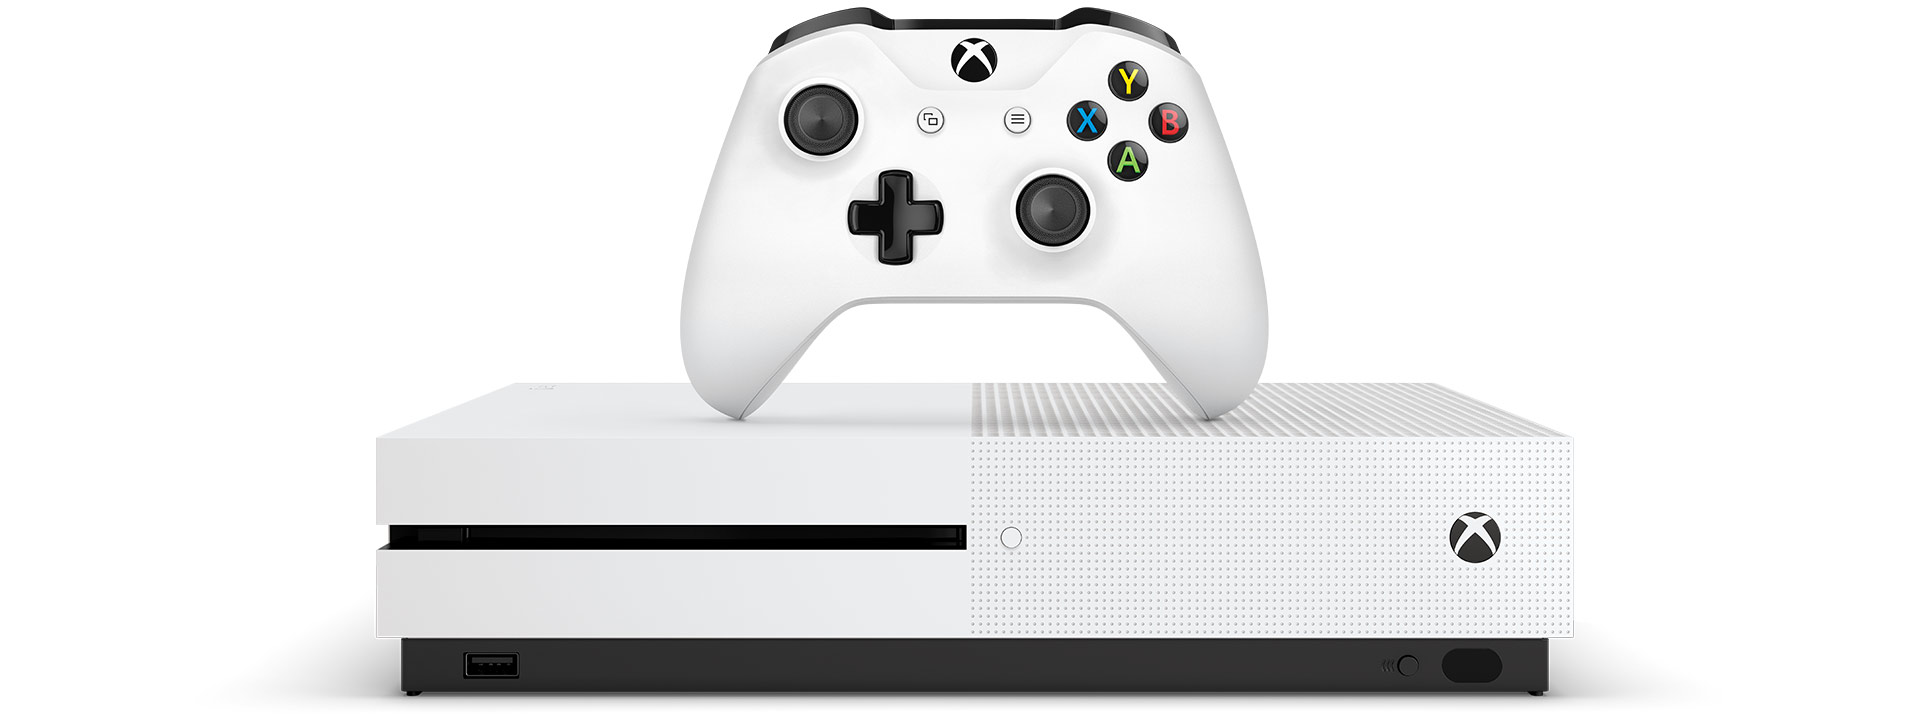 Xbox One S console with an Xbox wireless controller